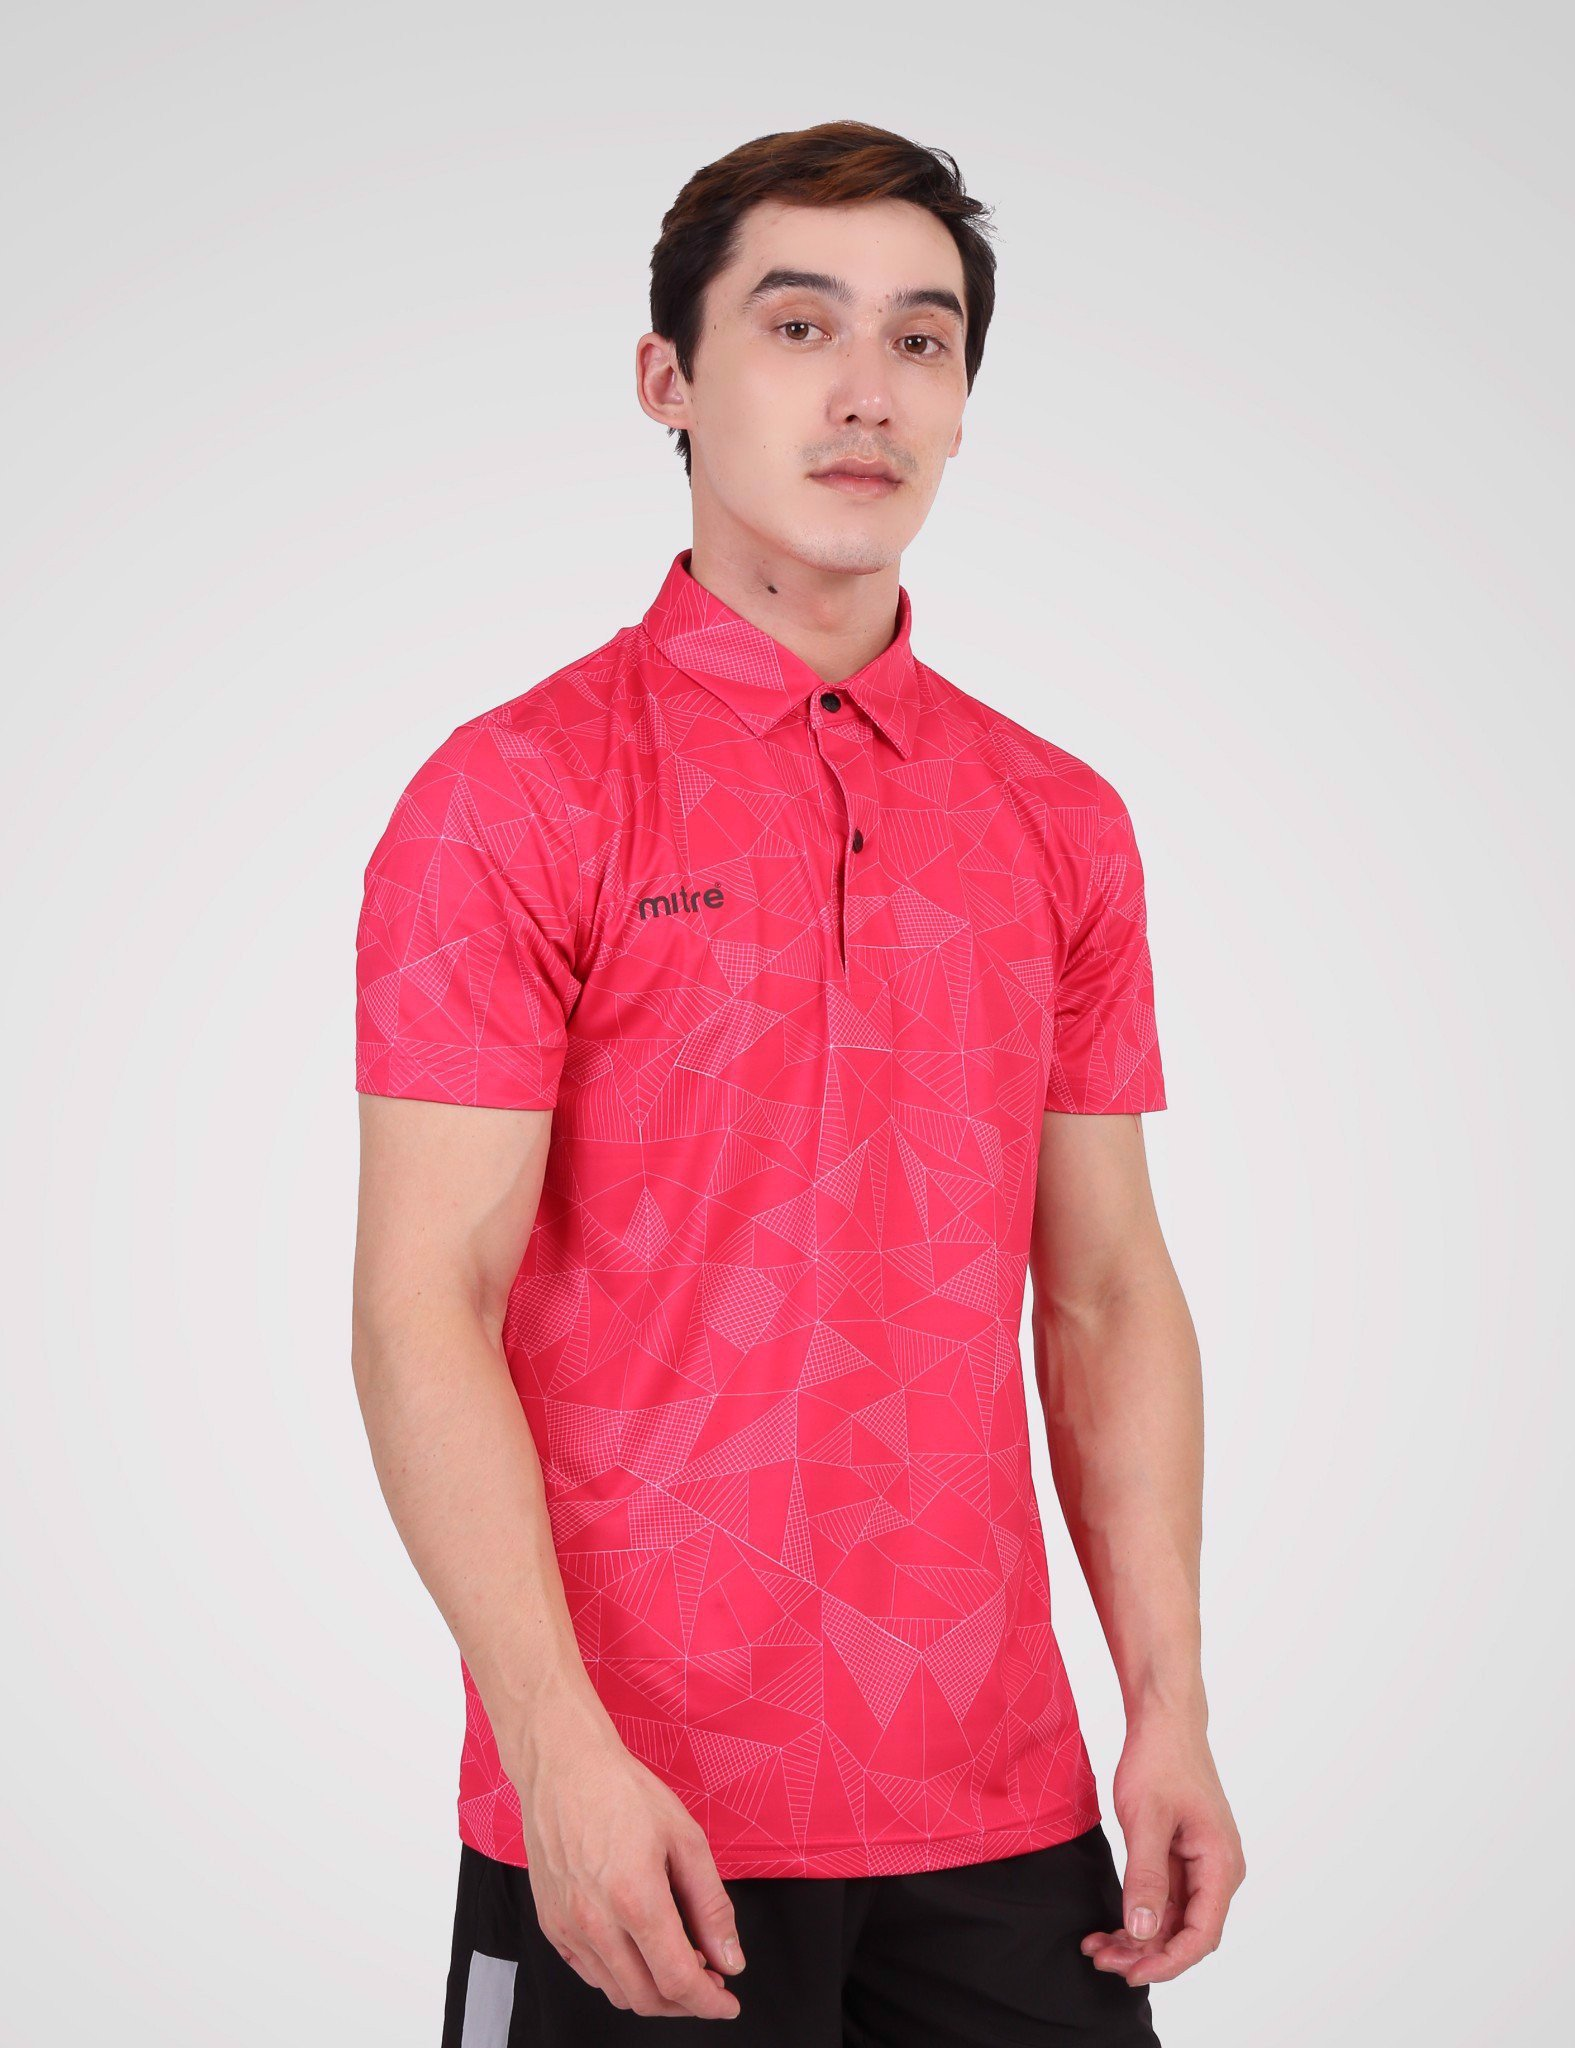 MITRE POLO SHIRT MT499-28